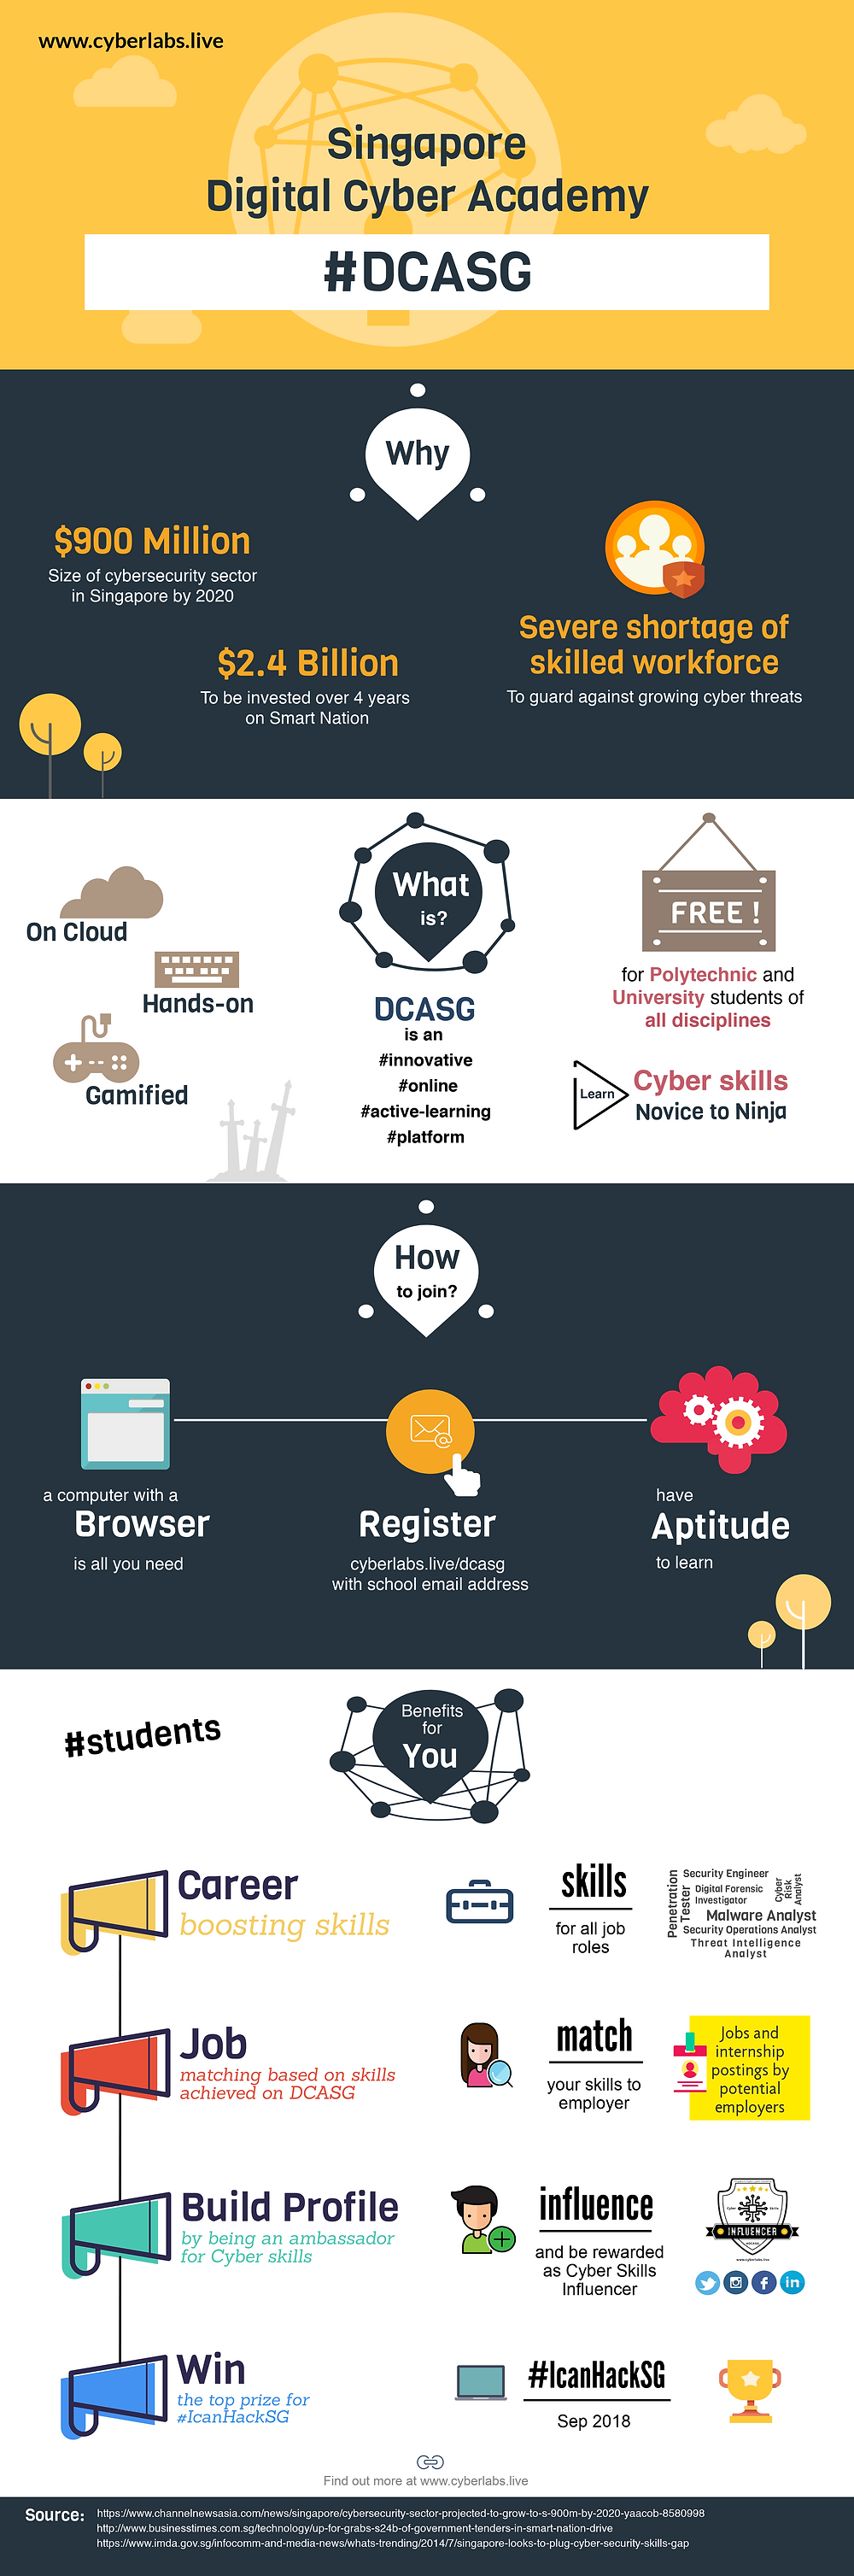 DCASG Infographic